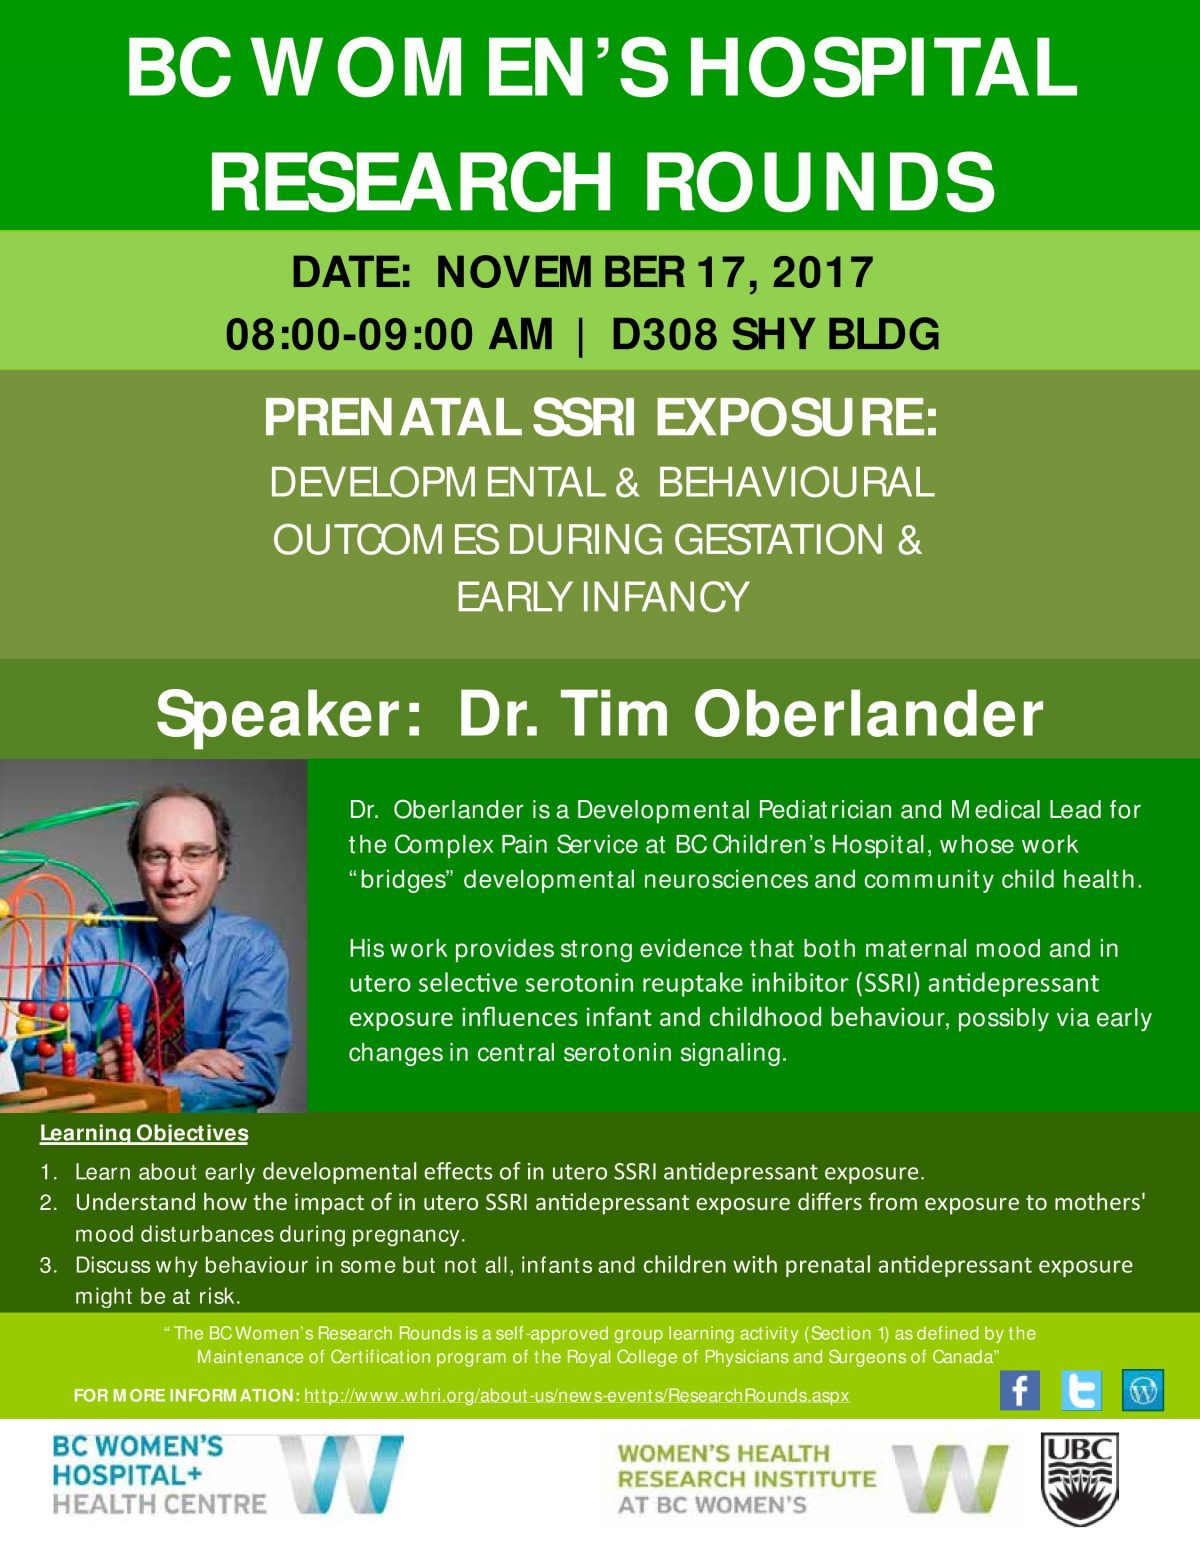 Prenatal SSRI Exposure: Developmental & behavioral outcomes during gestation & early infancy with Dr Tim Oberland